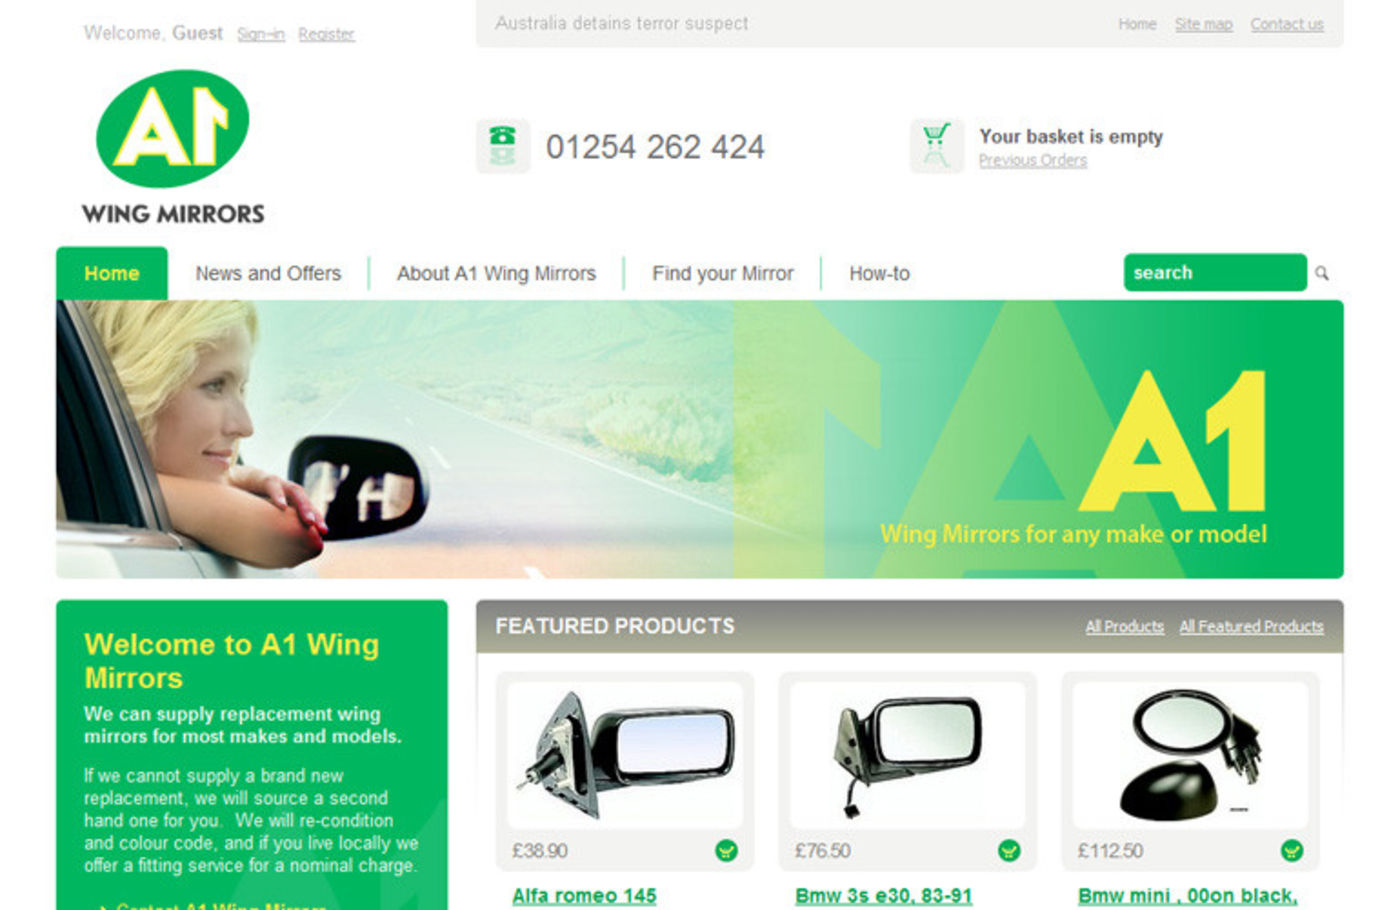 A1 Wing Mirrors Homepage header - A1 Wing Mirrors